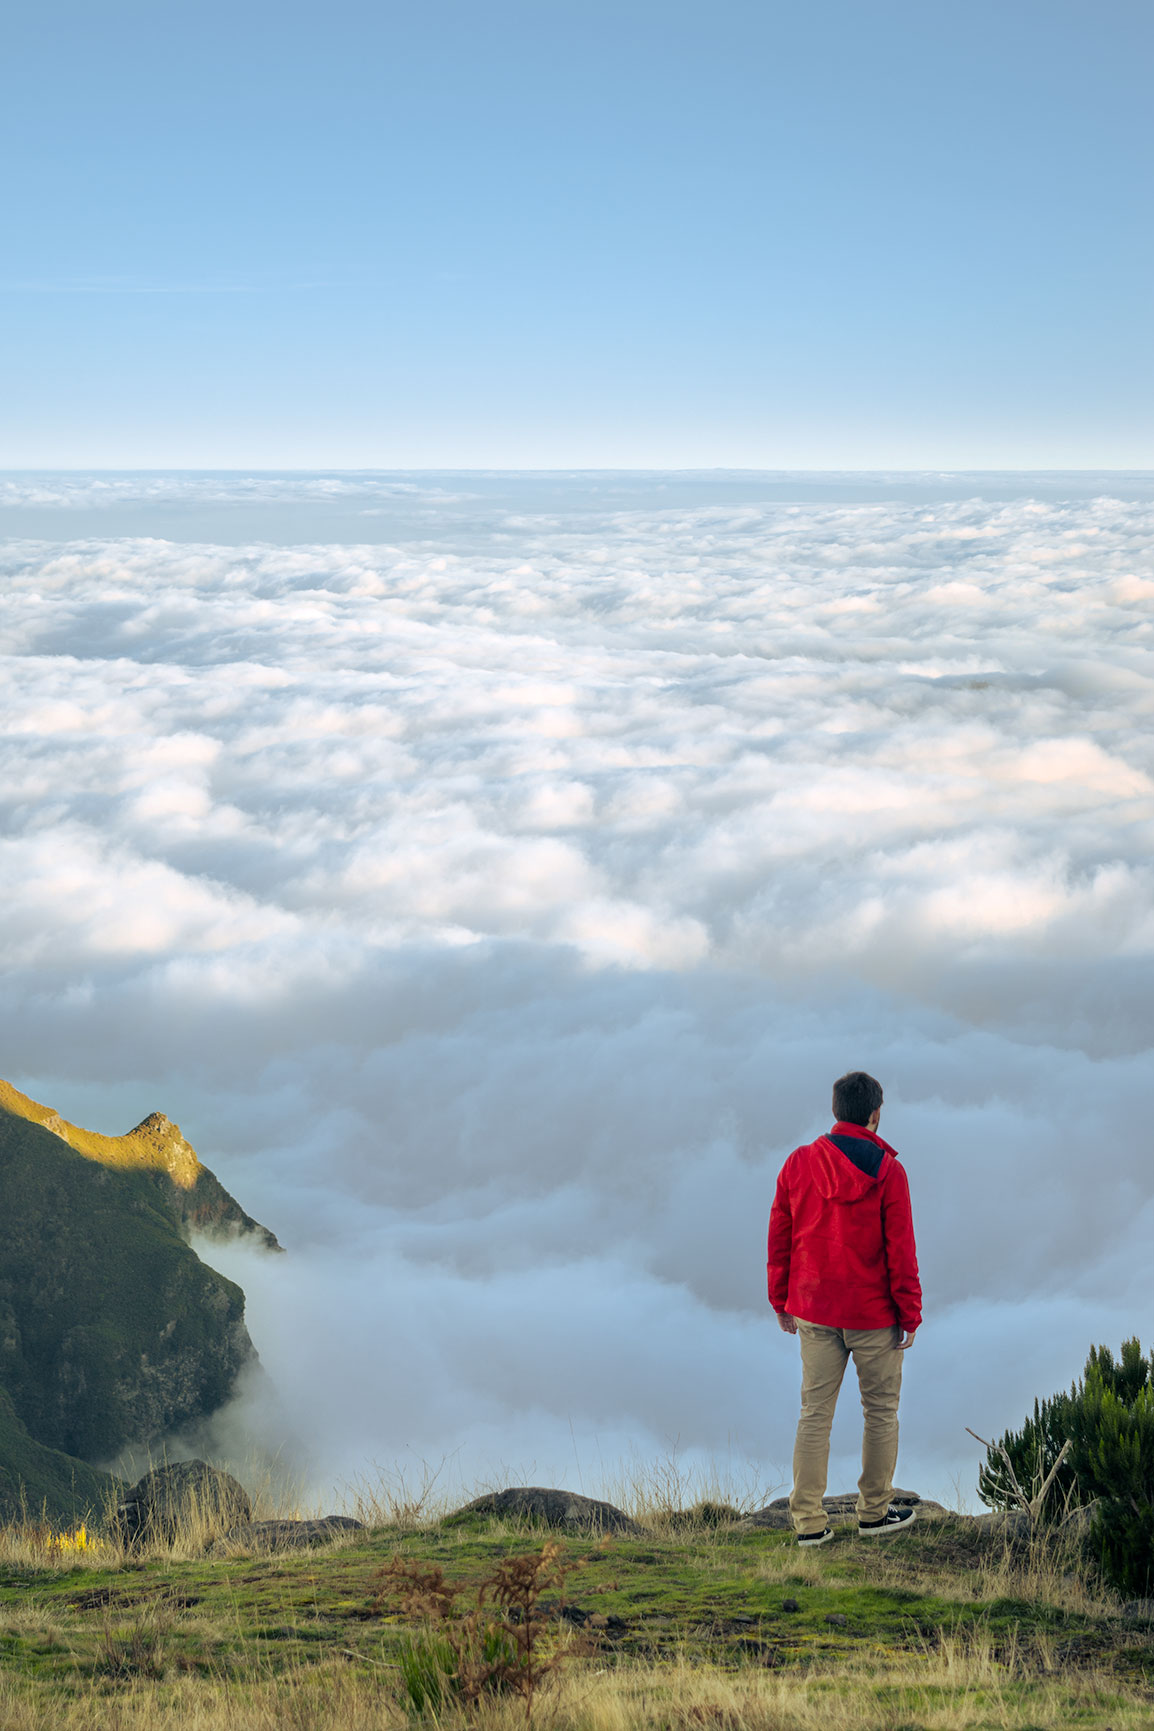 Rui above the clouds in the Vereda do Pico Ruivo in Madeira